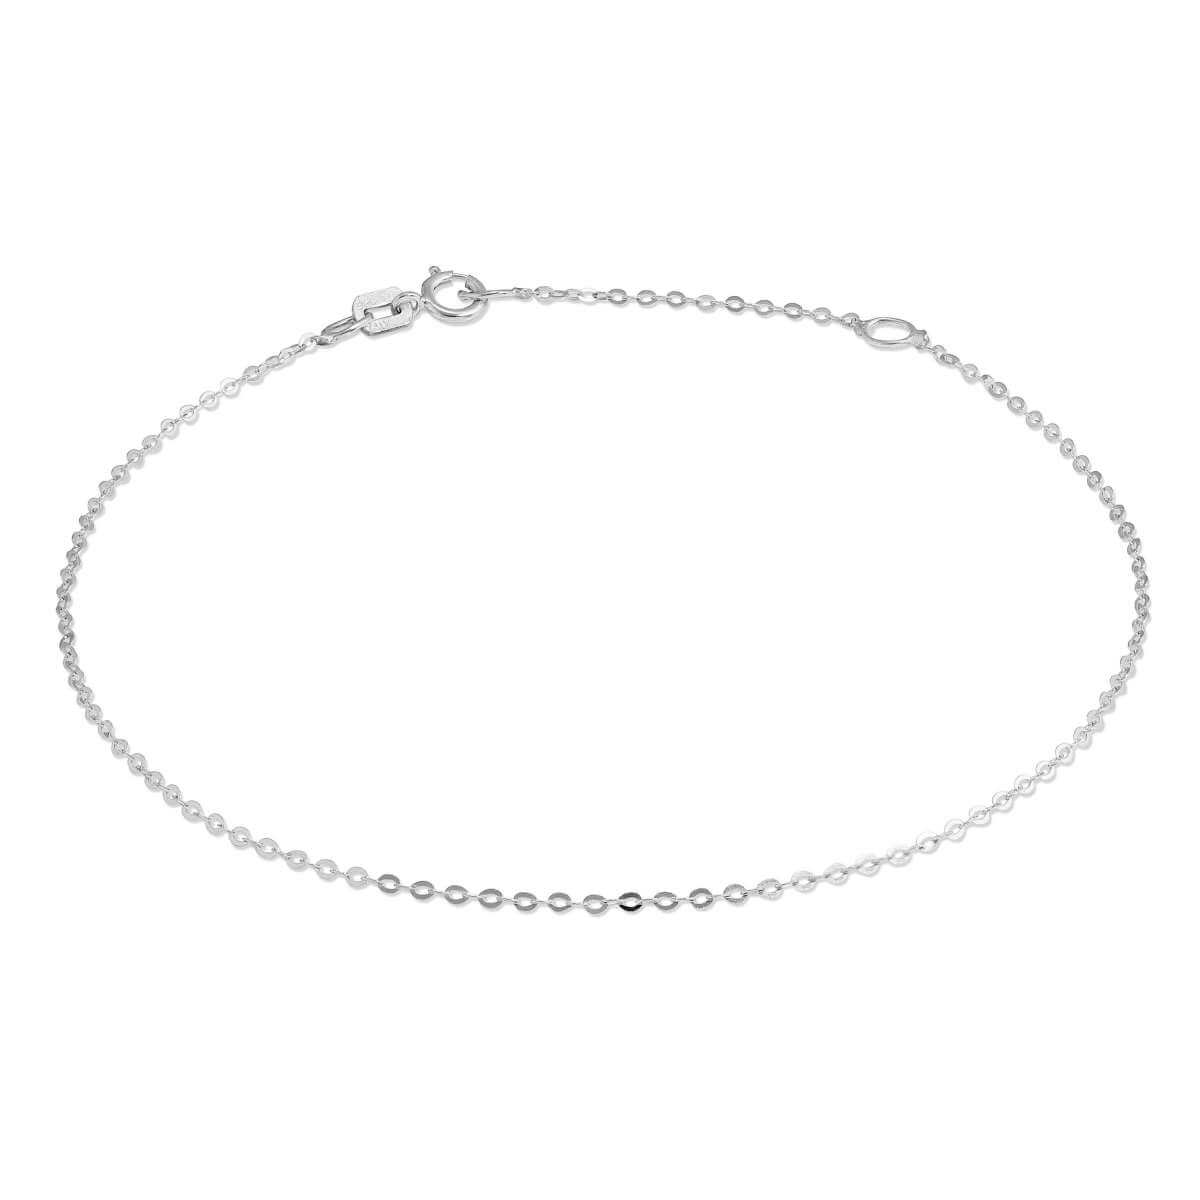 9ct White Gold Hammered Trace Chain Bracelet 7 - 8 Inches